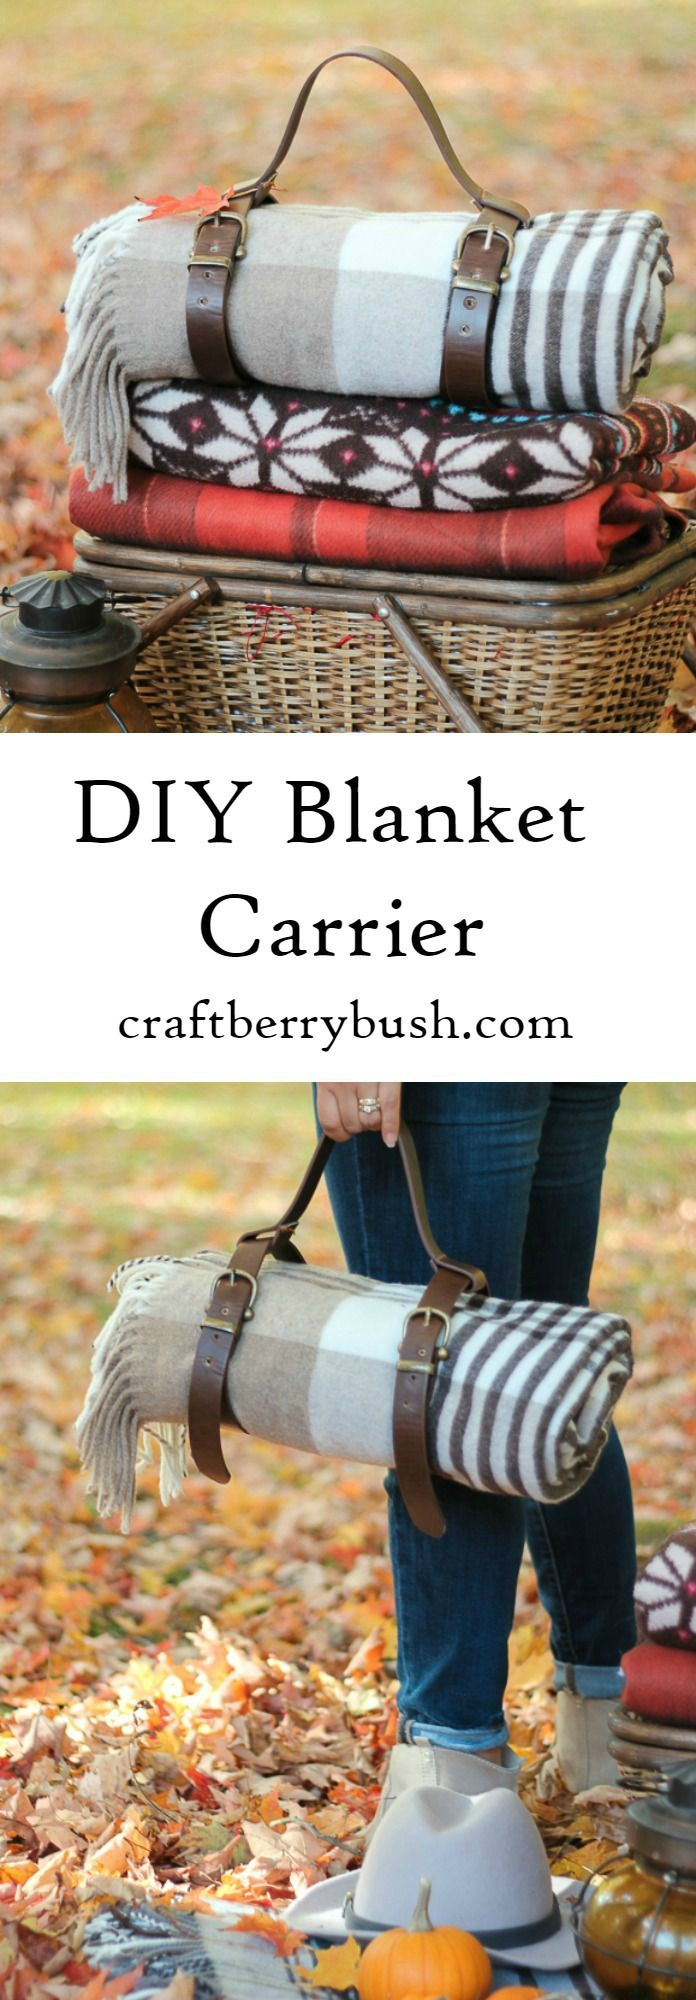 DIY Blanket Carrier from @craftberrybush what a cool idea!